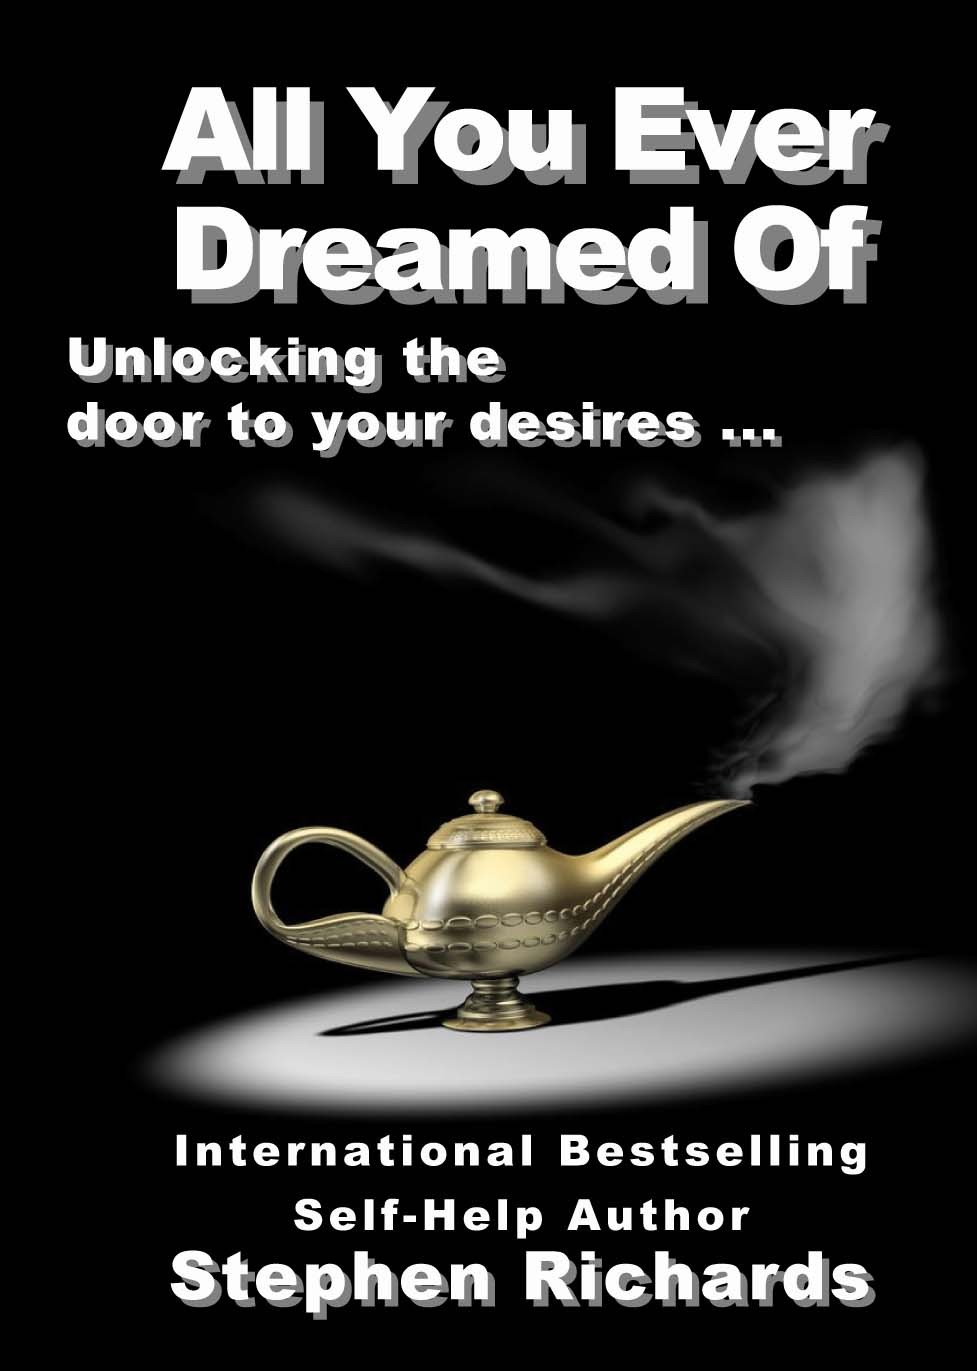 All You Ever Dreamed Of: Unlocking the door to your desires  by  Stephen Richards